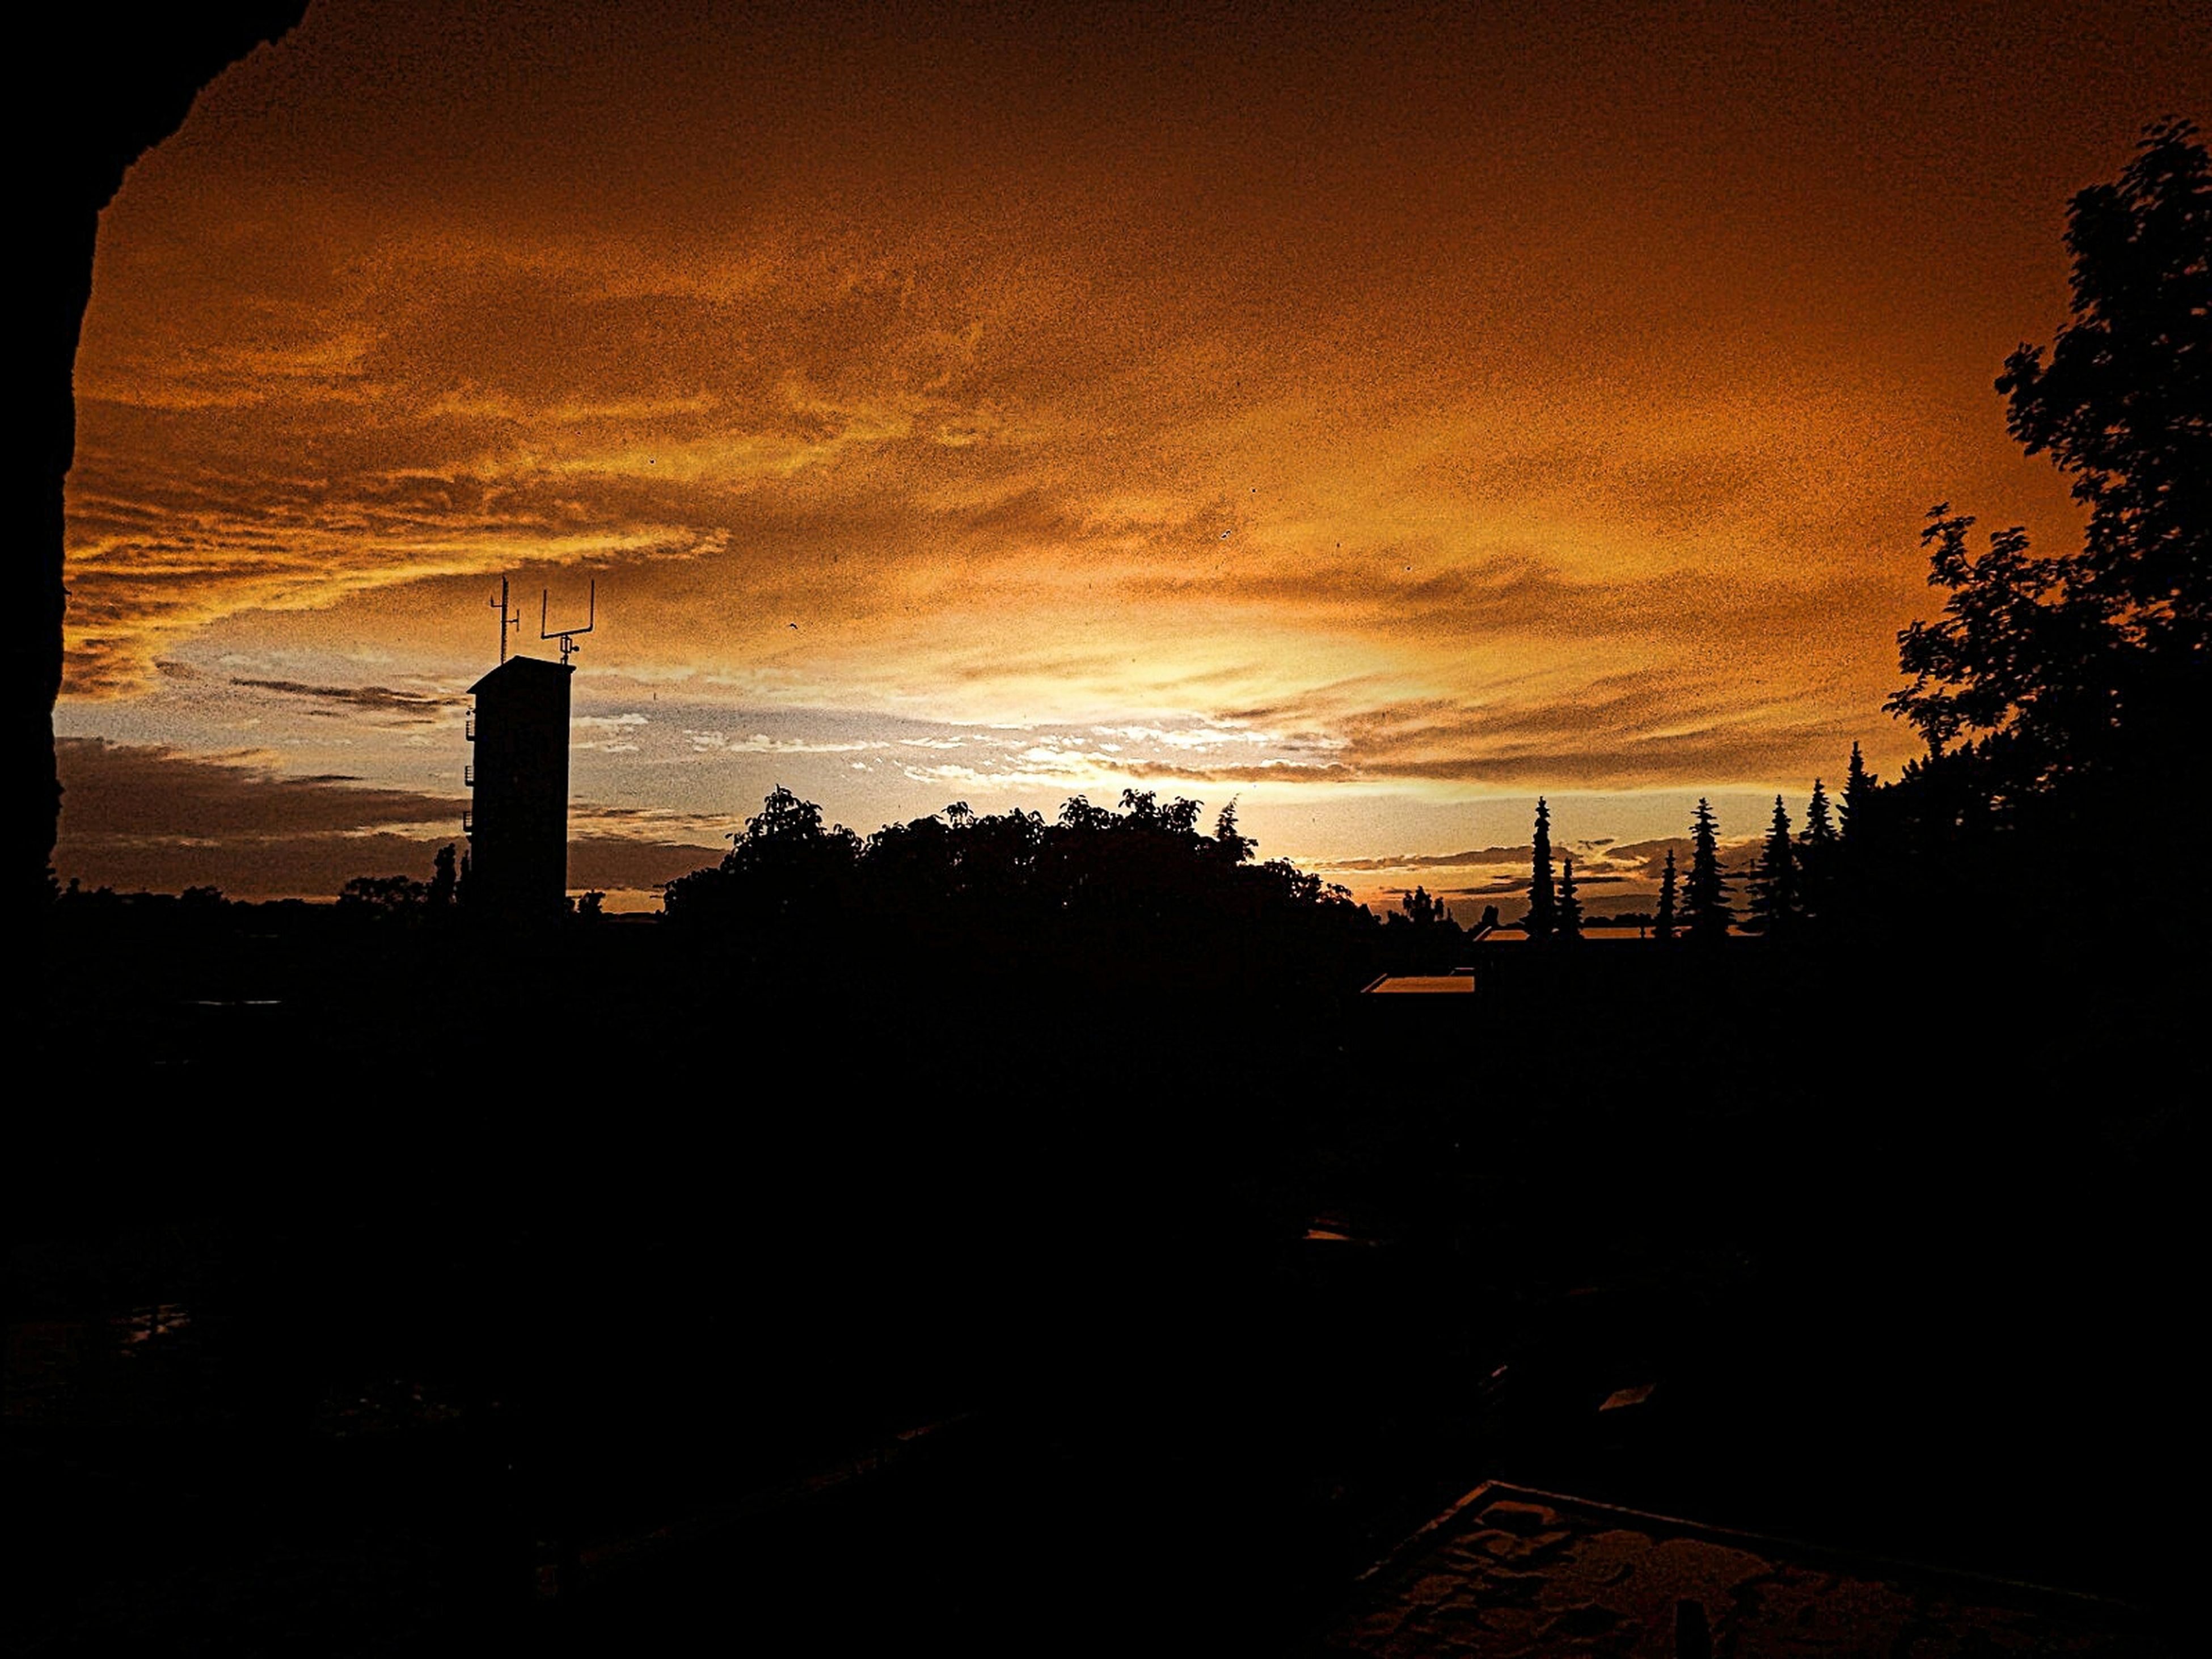 sunset, silhouette, built structure, architecture, sky, building exterior, cloud - sky, tree, orange color, dark, dusk, dramatic sky, house, scenics, beauty in nature, nature, cloud, cloudy, outdoors, tranquility